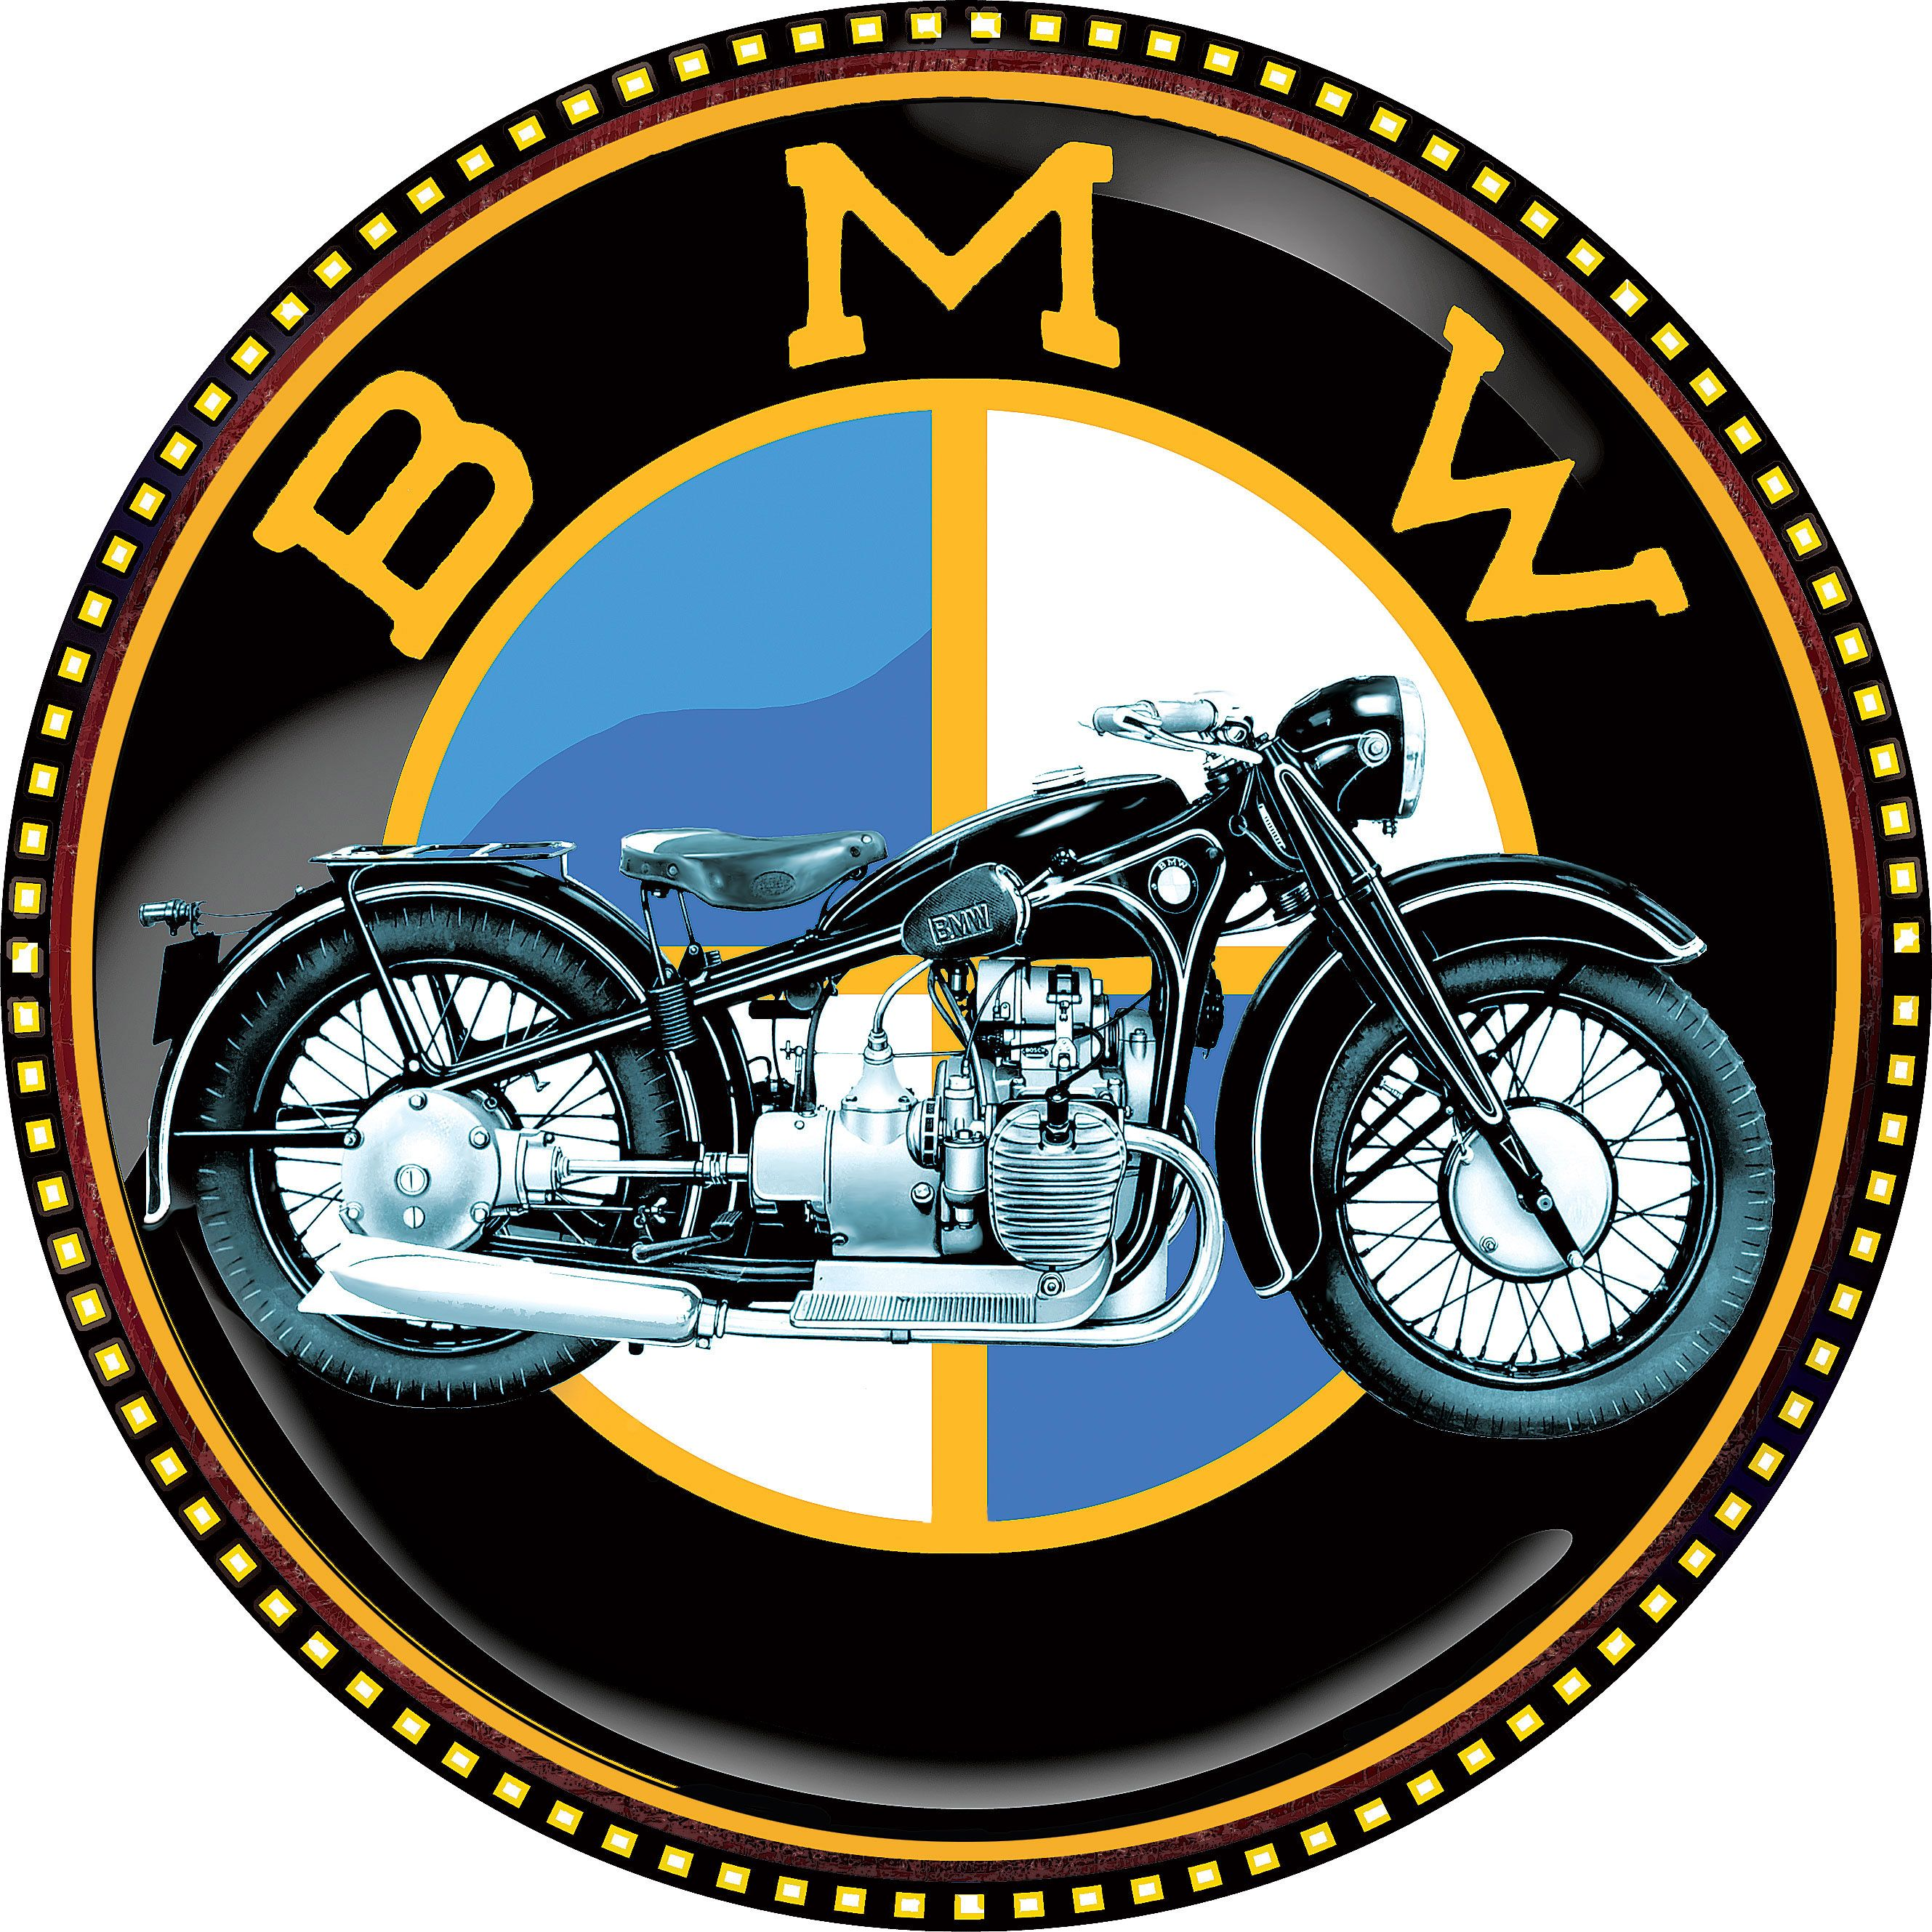 bmw vintage motorcycles awesome bmw 39 s pinterest vintage motorcycles bmw and vintage. Black Bedroom Furniture Sets. Home Design Ideas